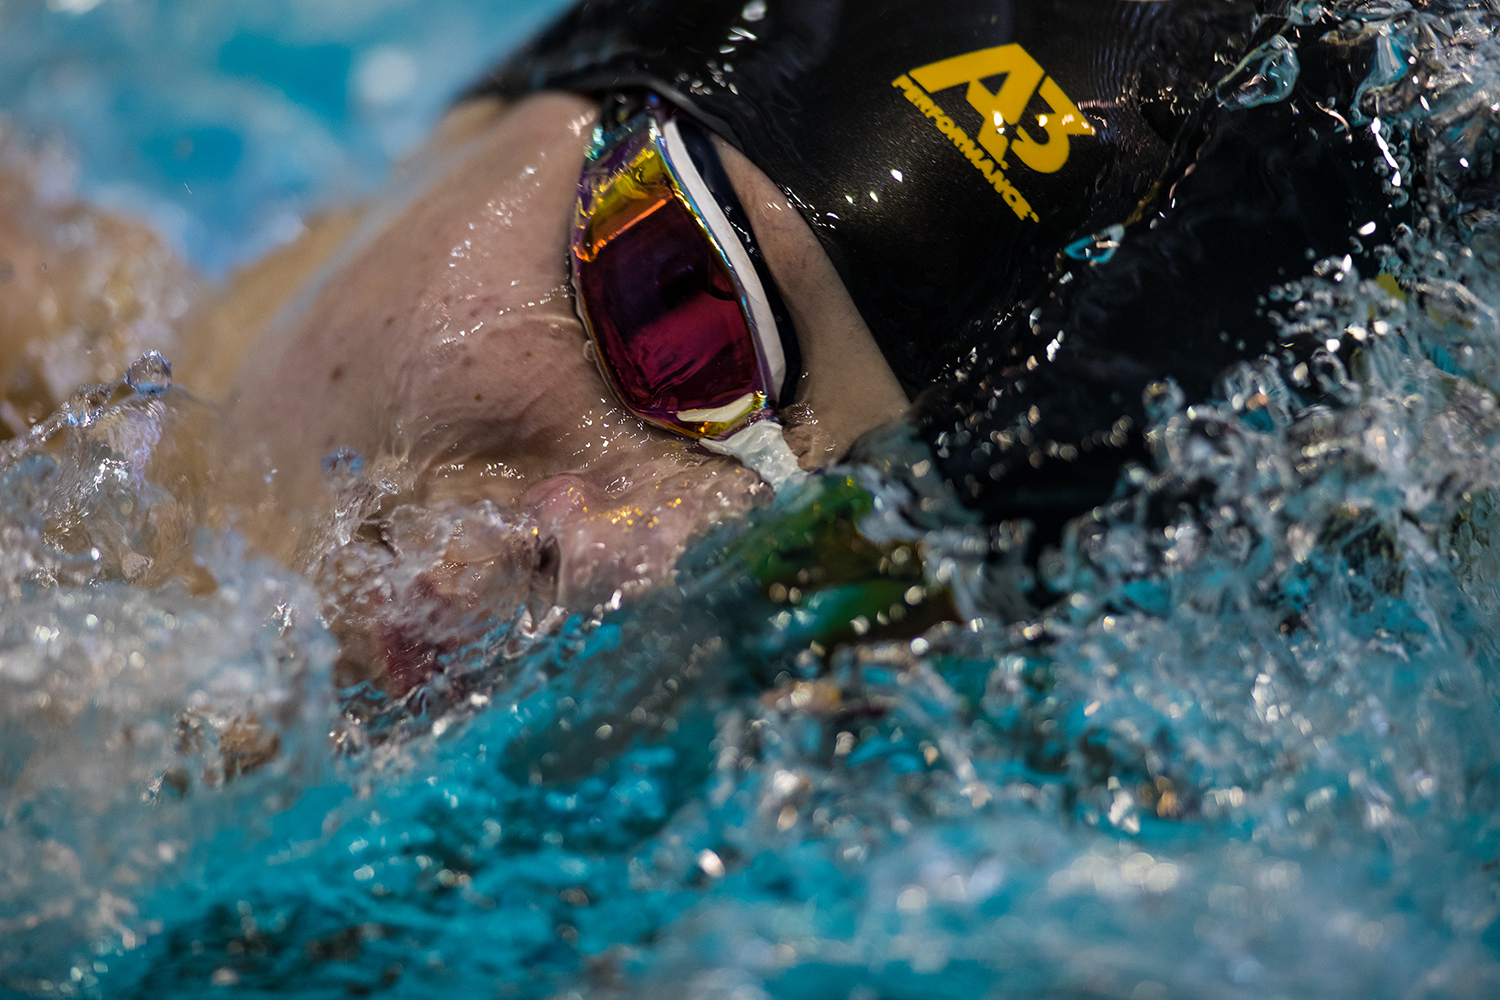 Iowa%27s+Michael+Tenney+%28JR%29+swims+during+the+prelims+of+the+Men+500+freestyle.+He+scored+a+4%3A24.02+during+the+second+day+of+the+2019+Big+Ten+Men%27s+Swimming+and+Diving+Championships+at+the+CRWC+on+Thursday%2C+February+28%2C+2019.+